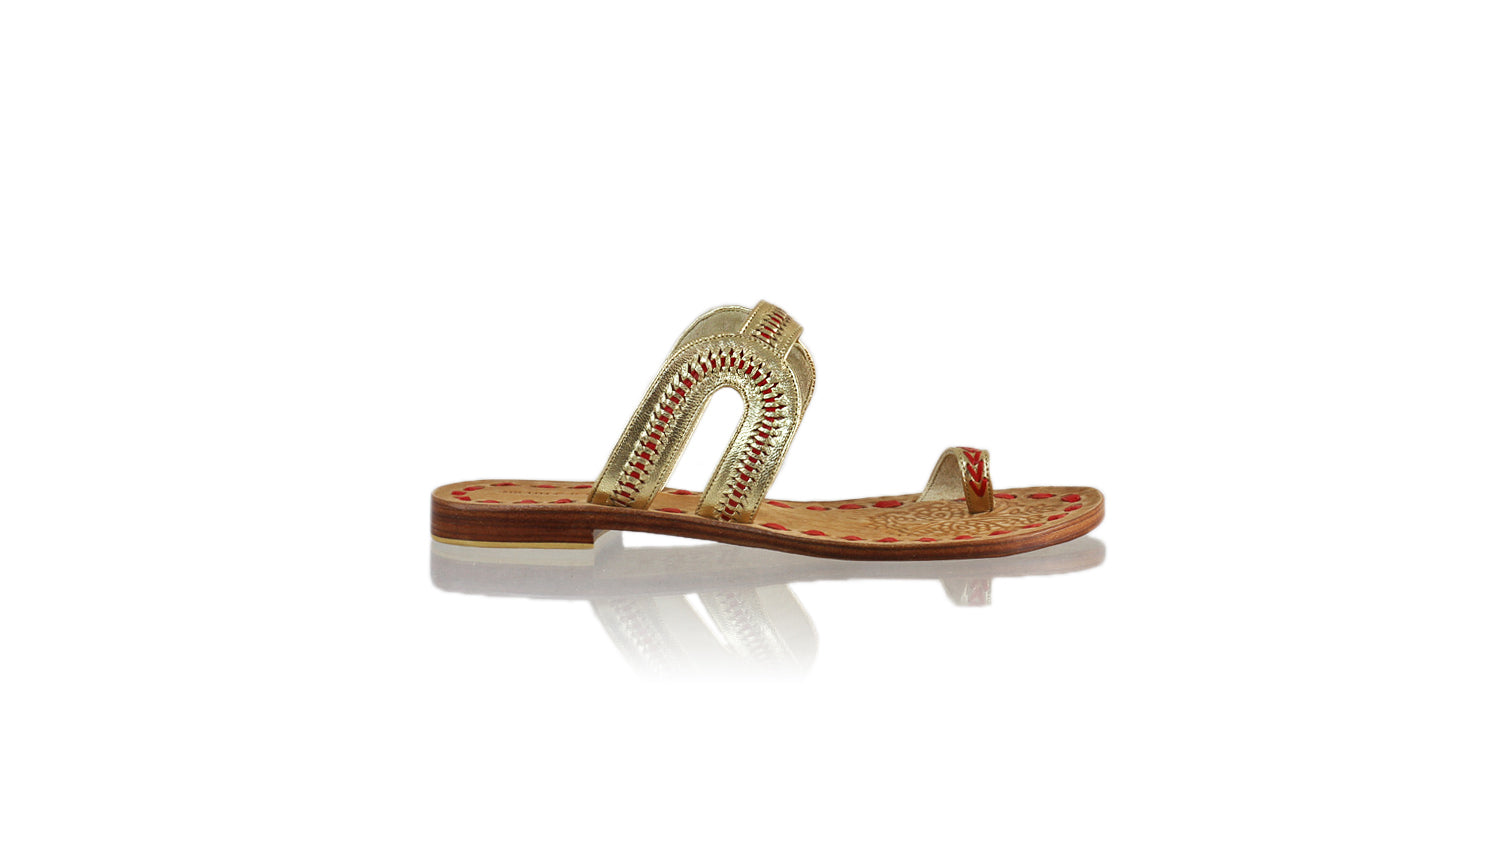 Leather-shoes-Andy 20mm Flat - Gold & Red-sandals flat-NILUH DJELANTIK-NILUH DJELANTIK